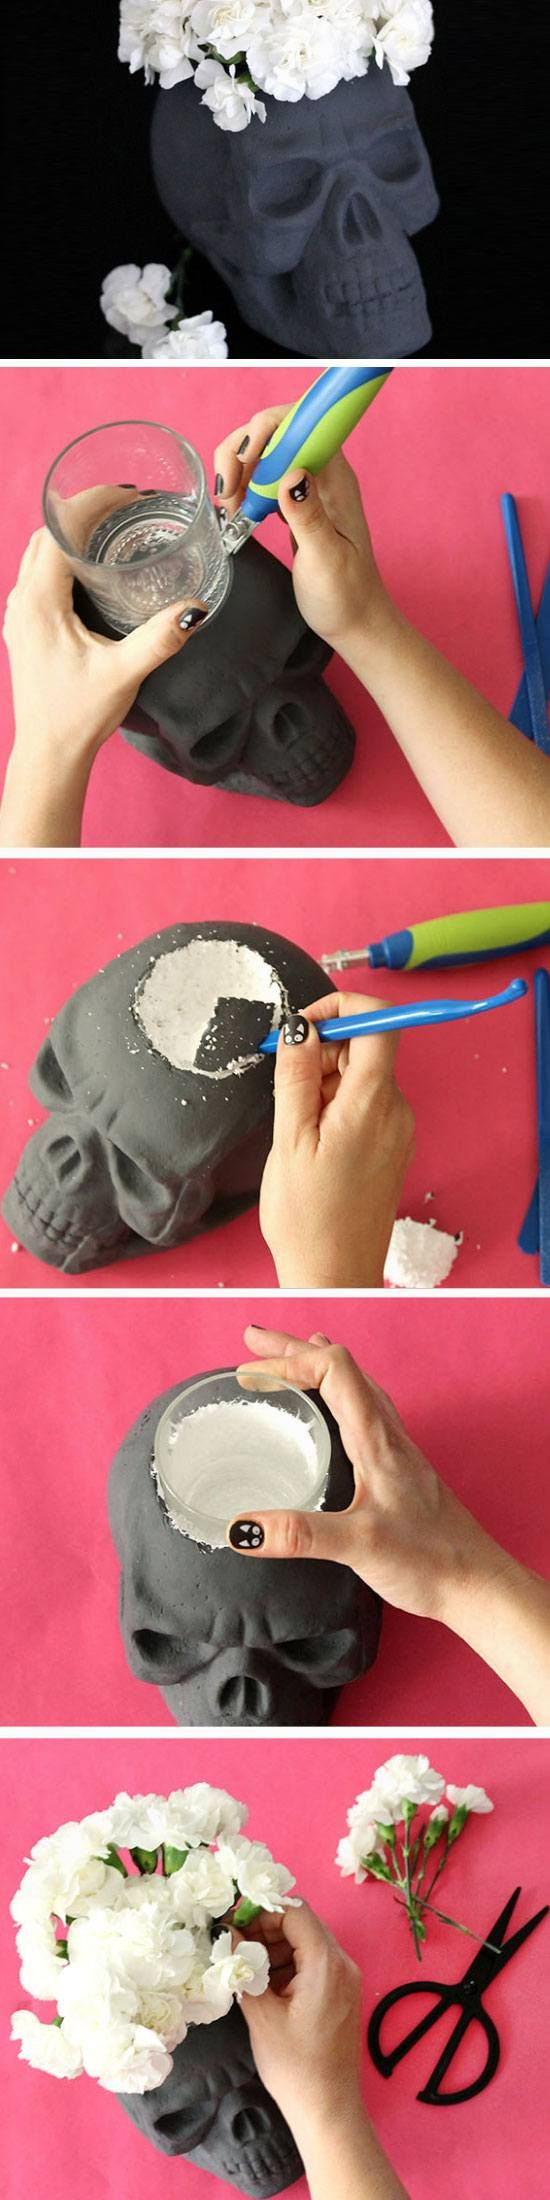 17 Best images about decoração on Pinterest Crafts, Easy diy and Vase - Homemade Halloween Decorations Pinterest